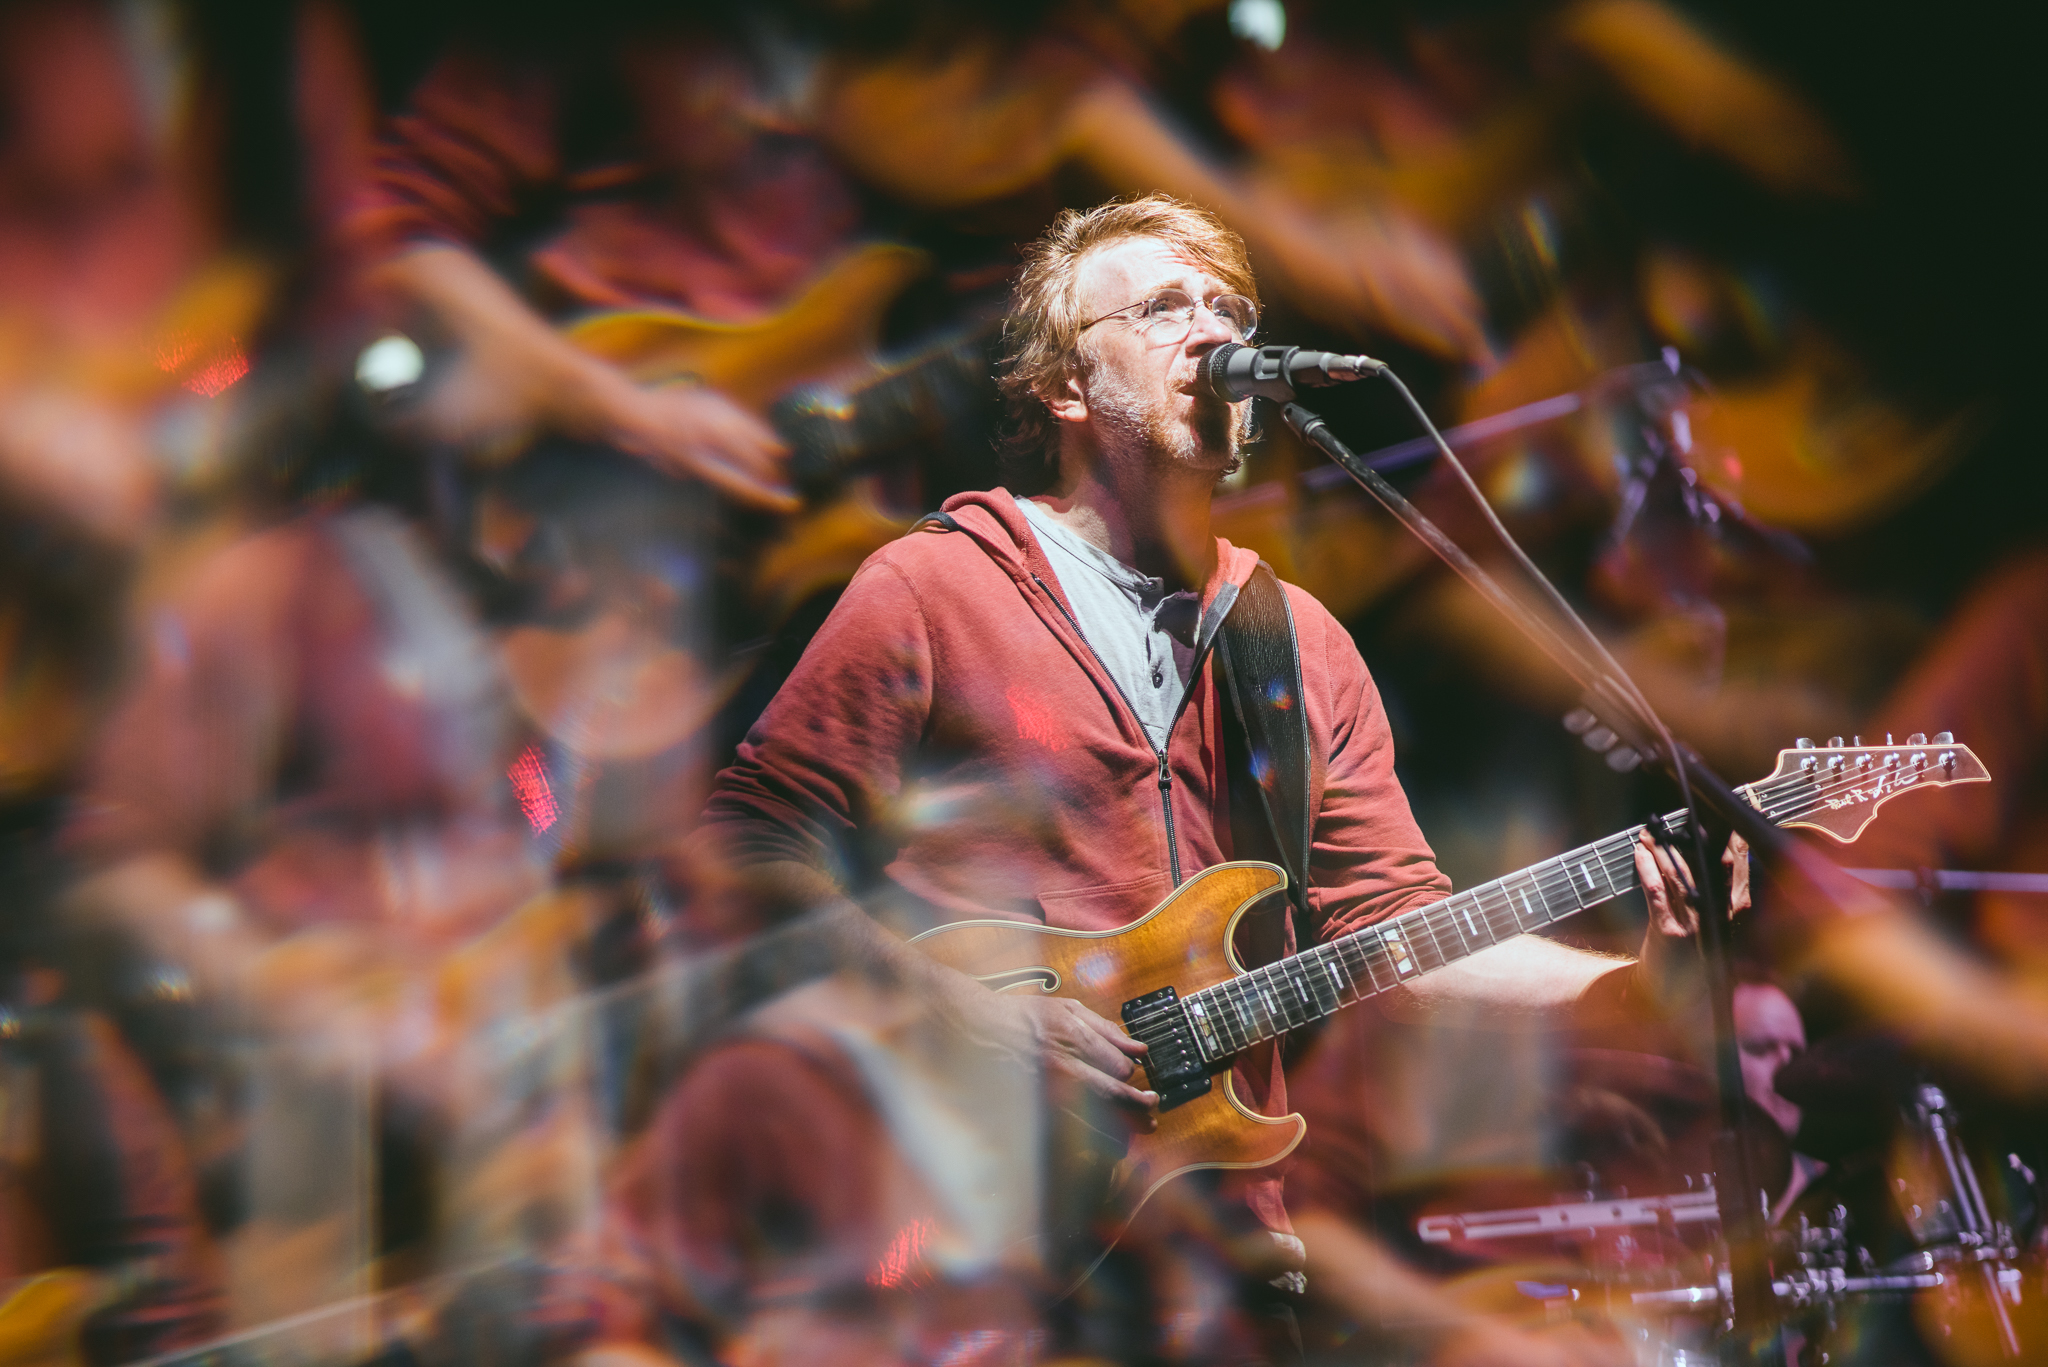 Photo © Phish, taken by aLIVE Coverage